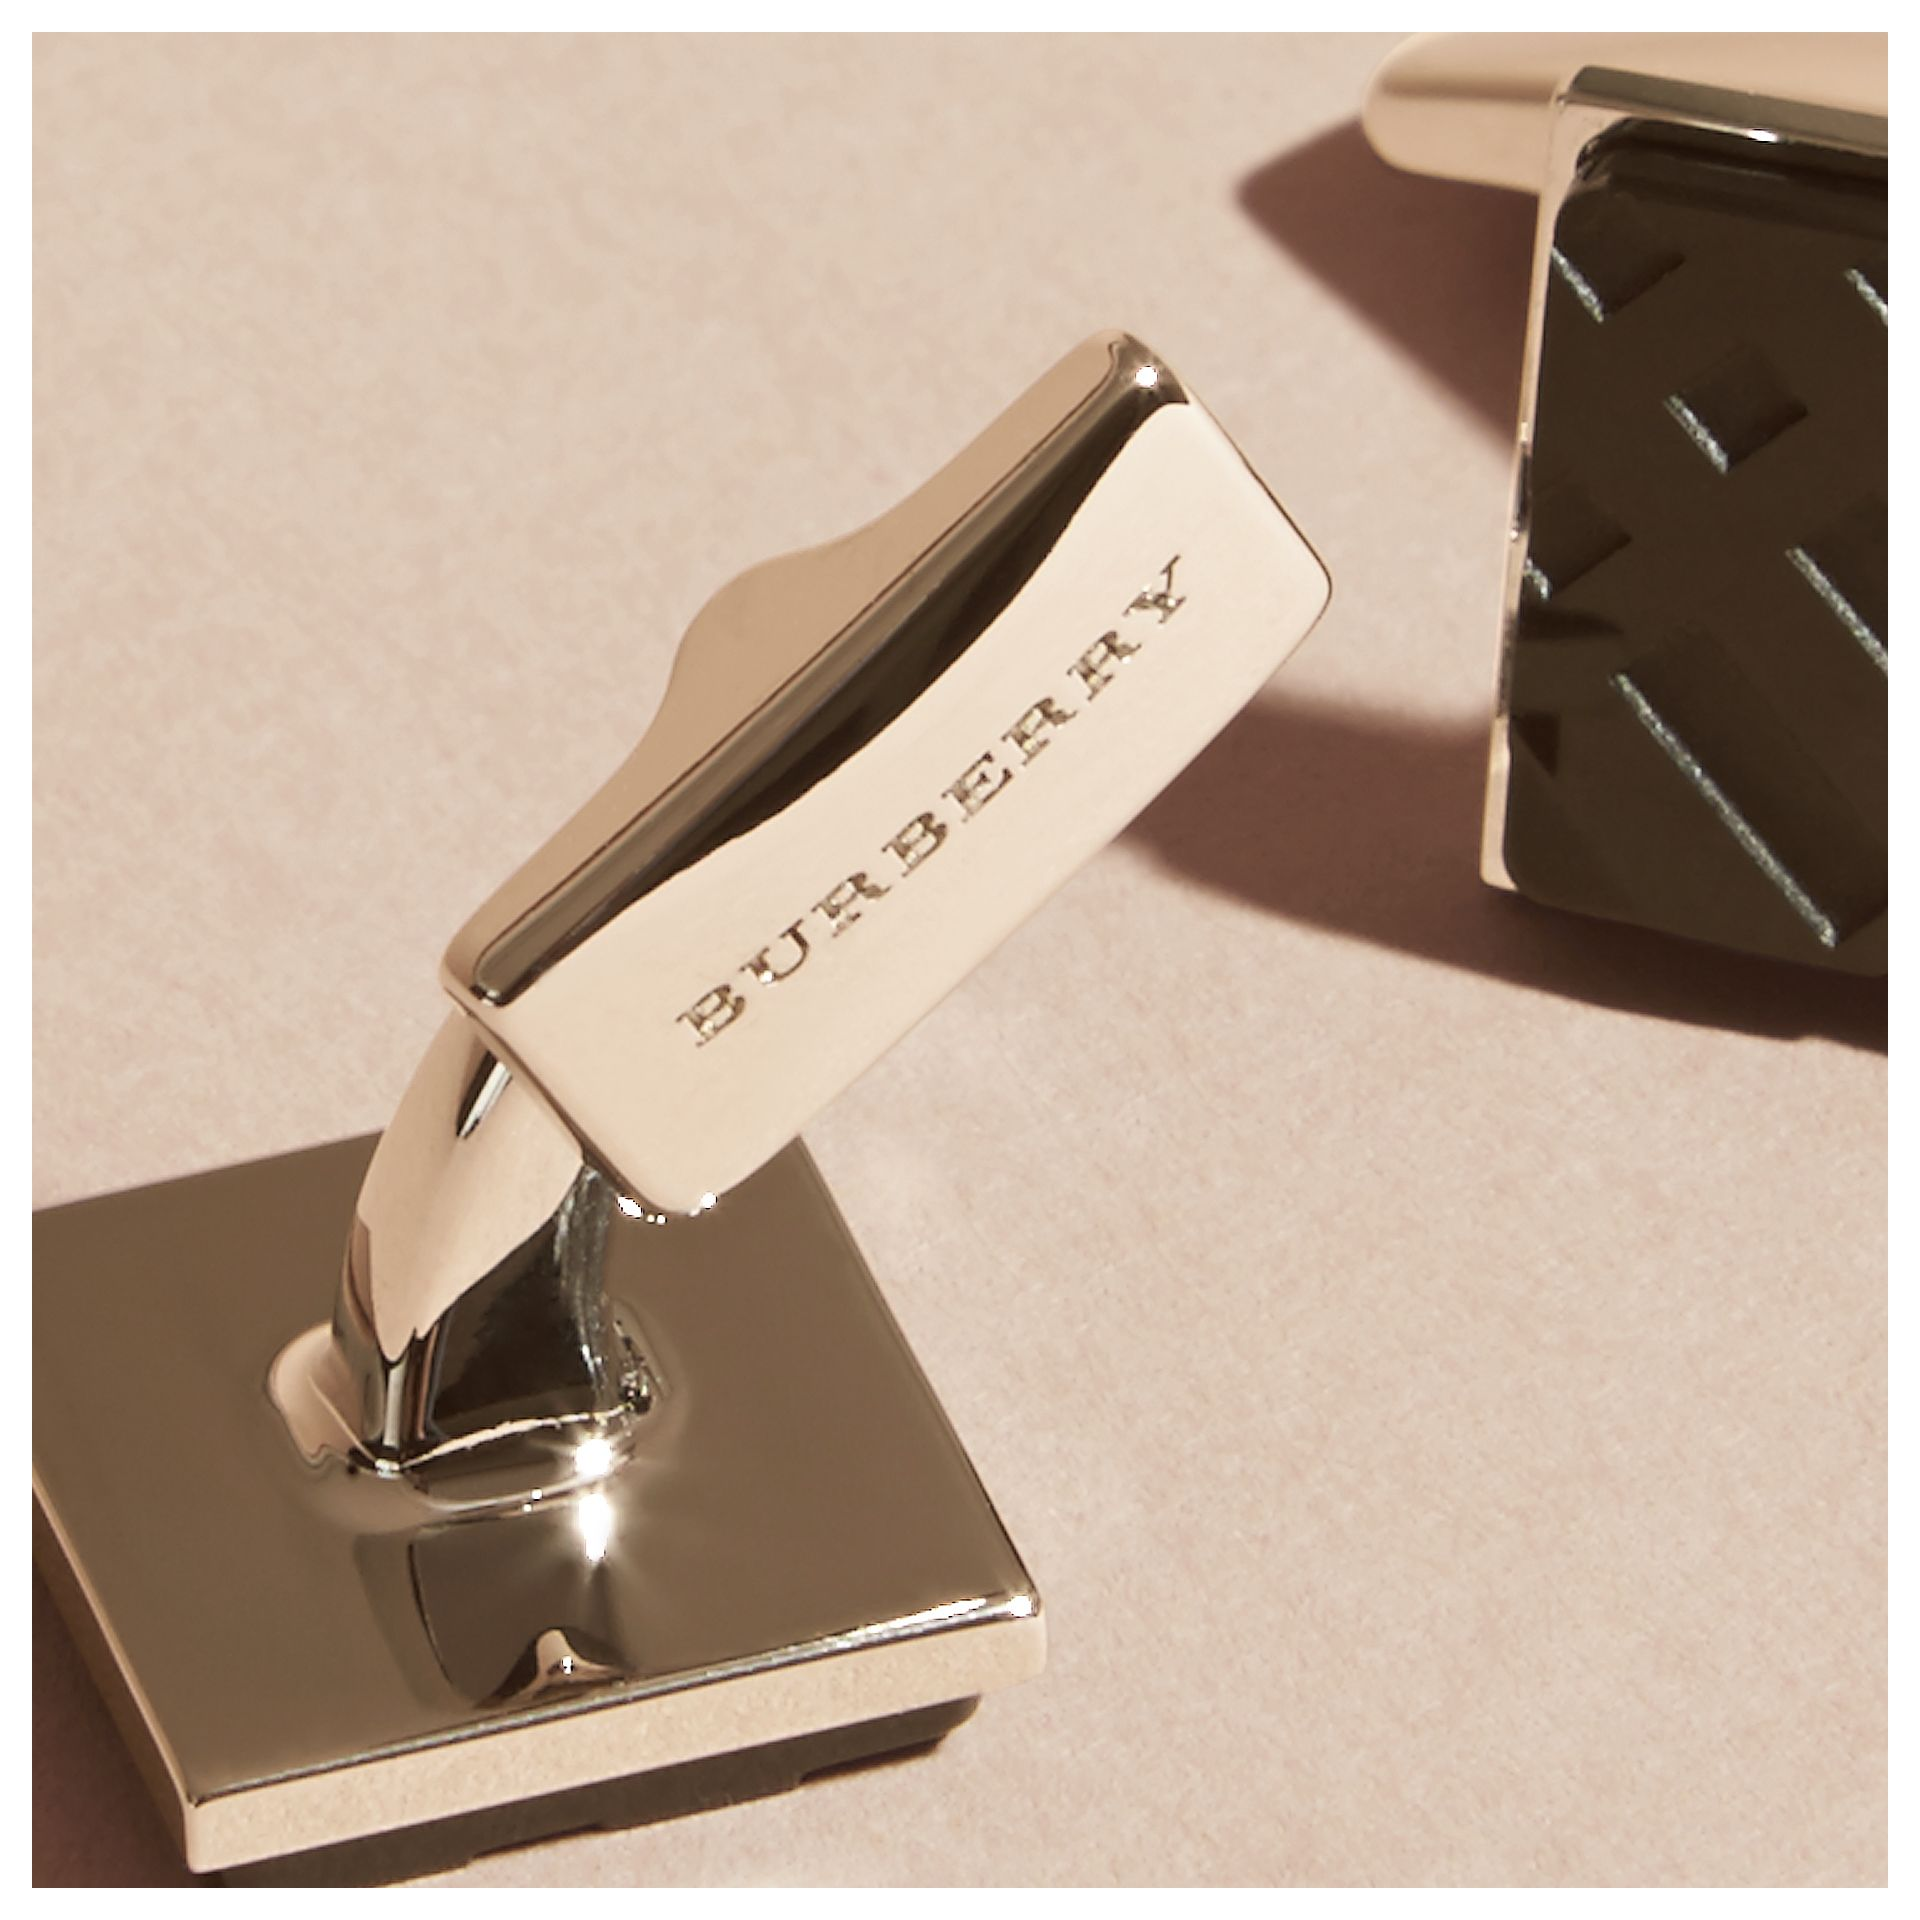 Check-engraved Square Cufflinks in Black - Men | Burberry - gallery image 3